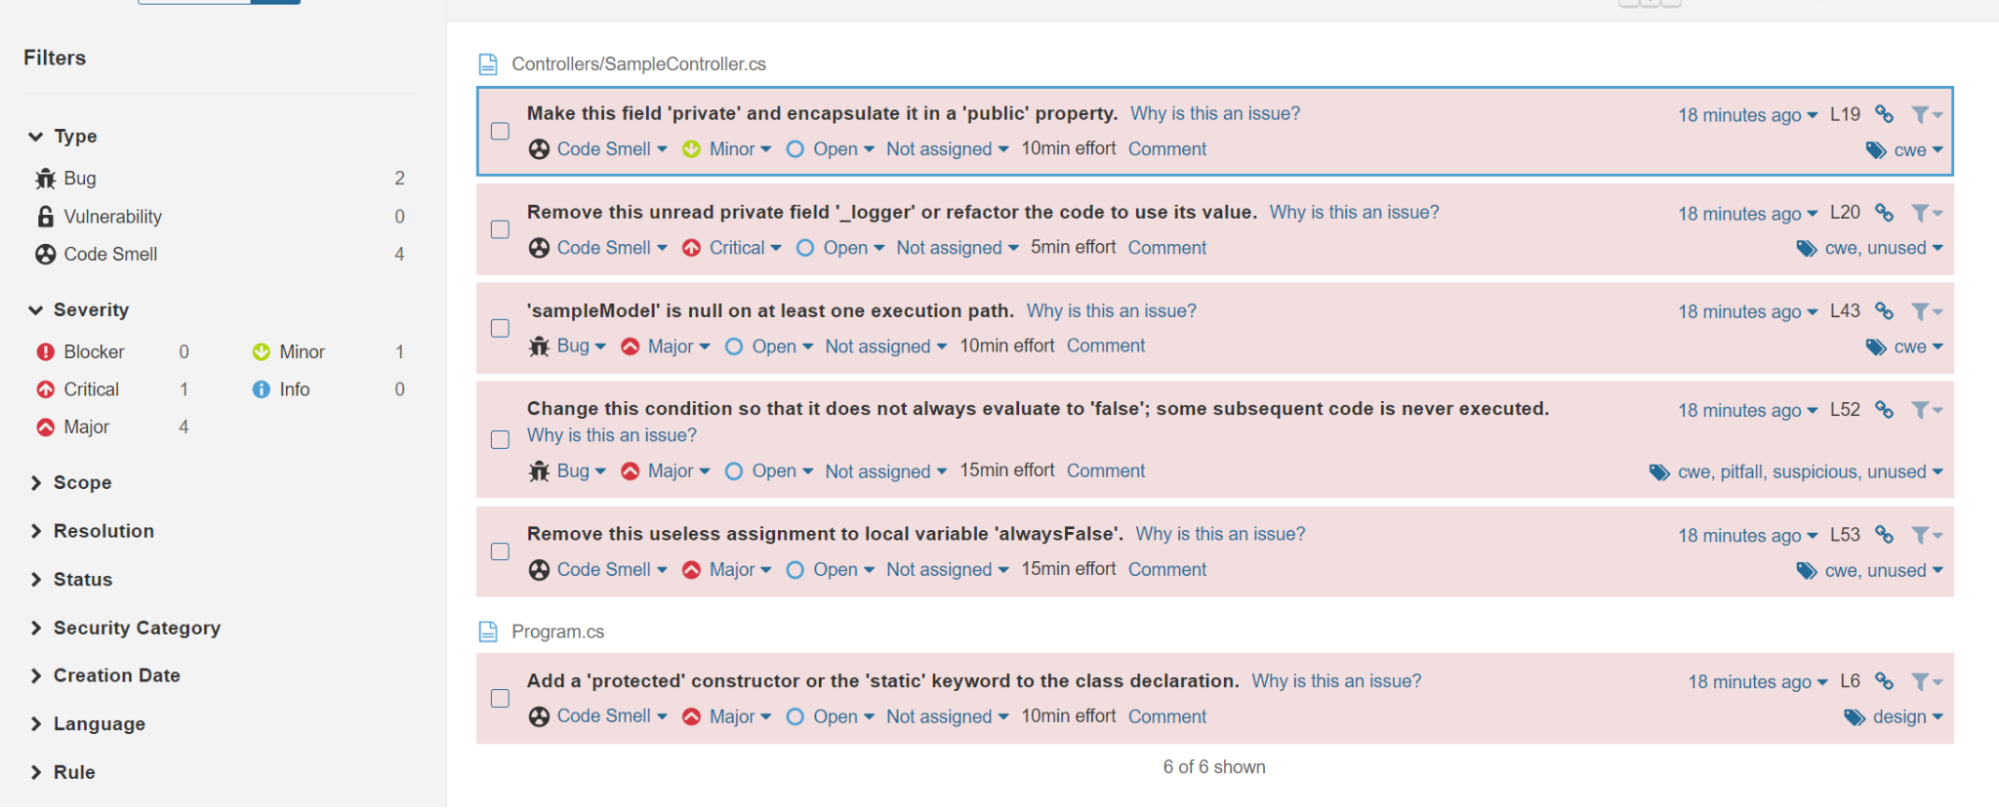 Screenshot of Listed Issues In Source Code